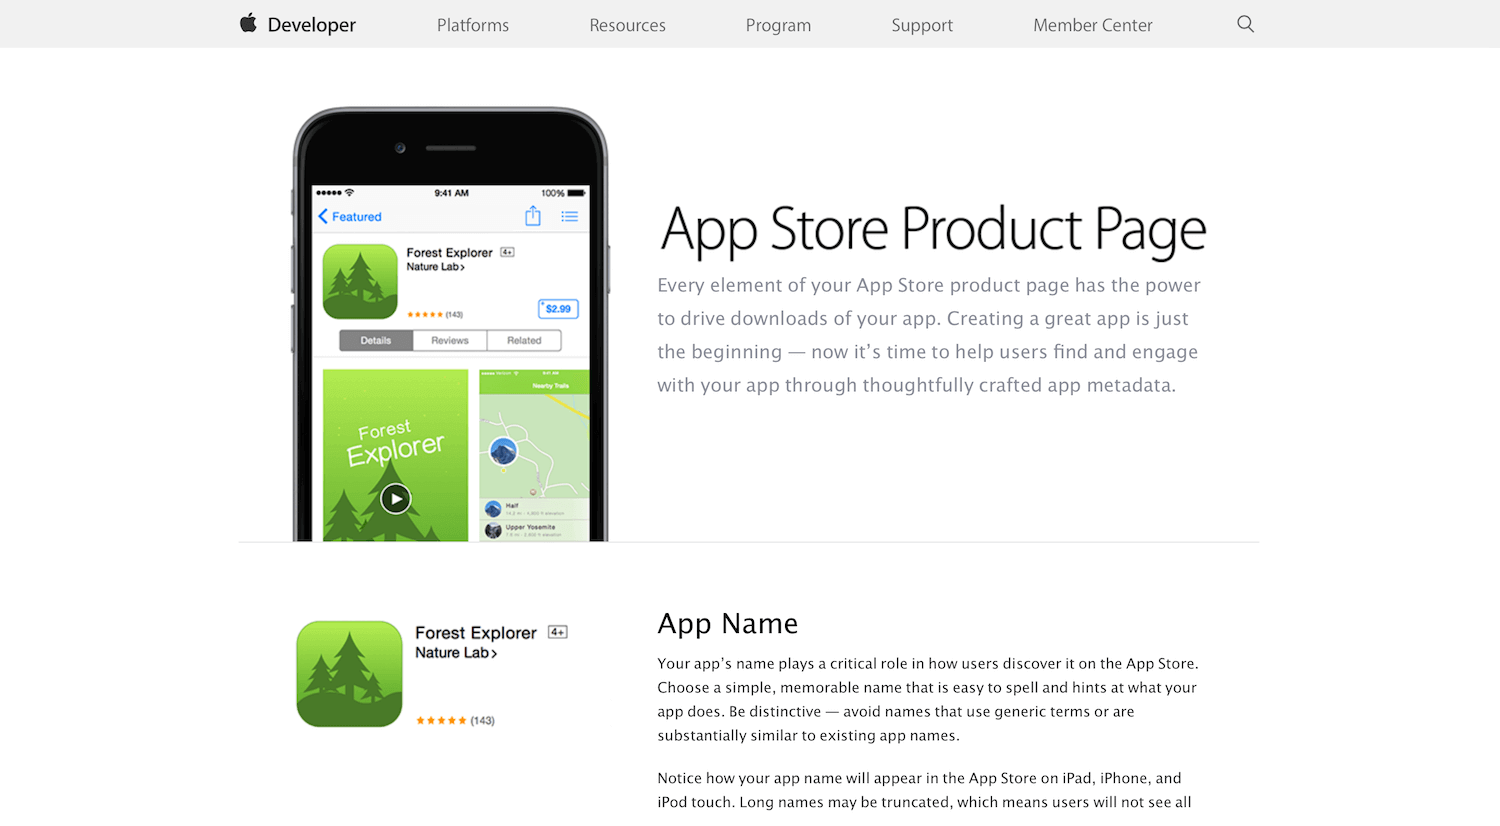 Apple Store Product Page